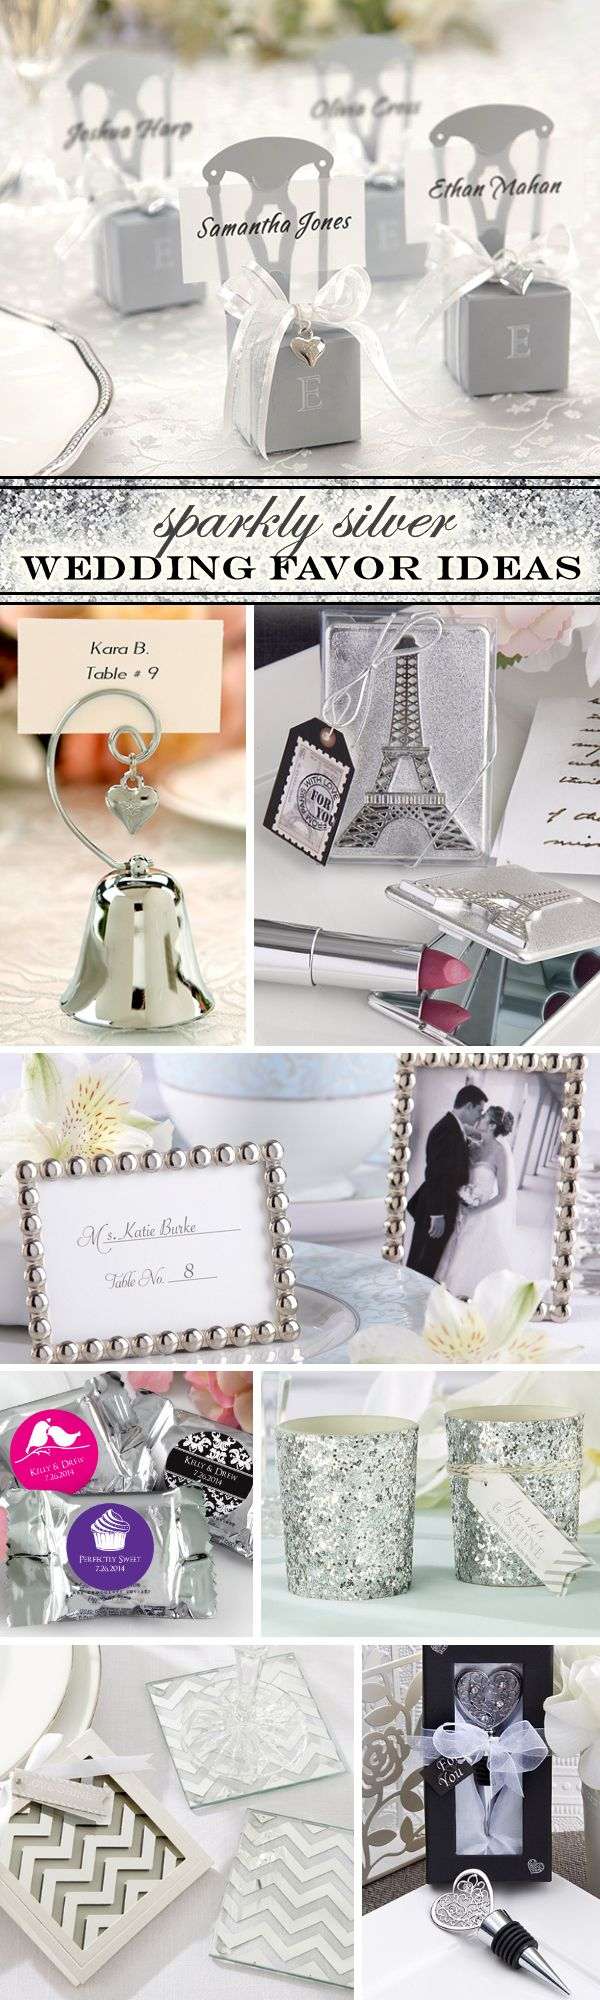 838 best Wedding Favours images on Pinterest | Wedding favours ...